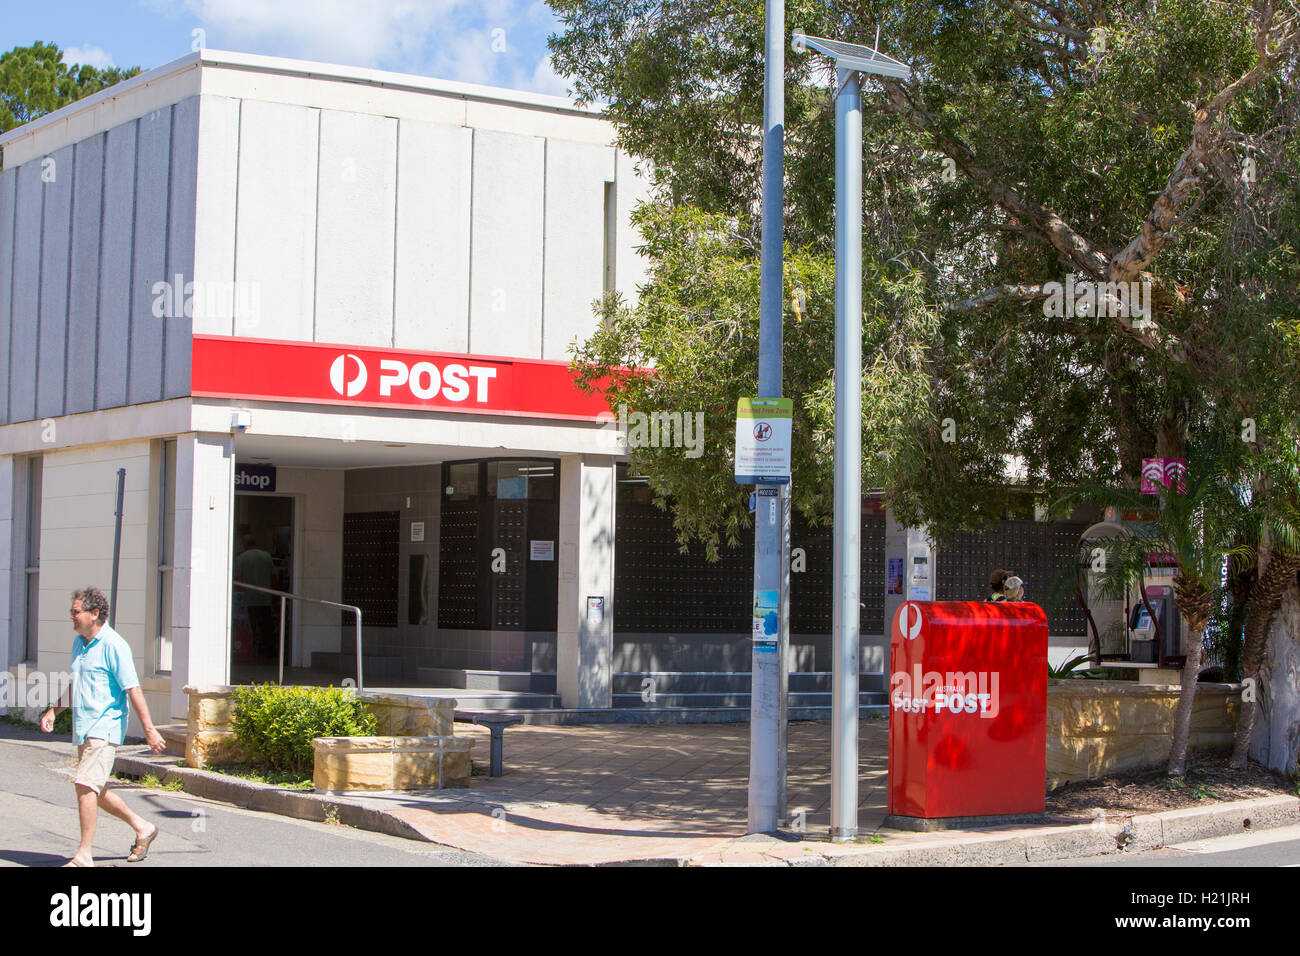 Australia Post store and mail letterbox in North Sydney